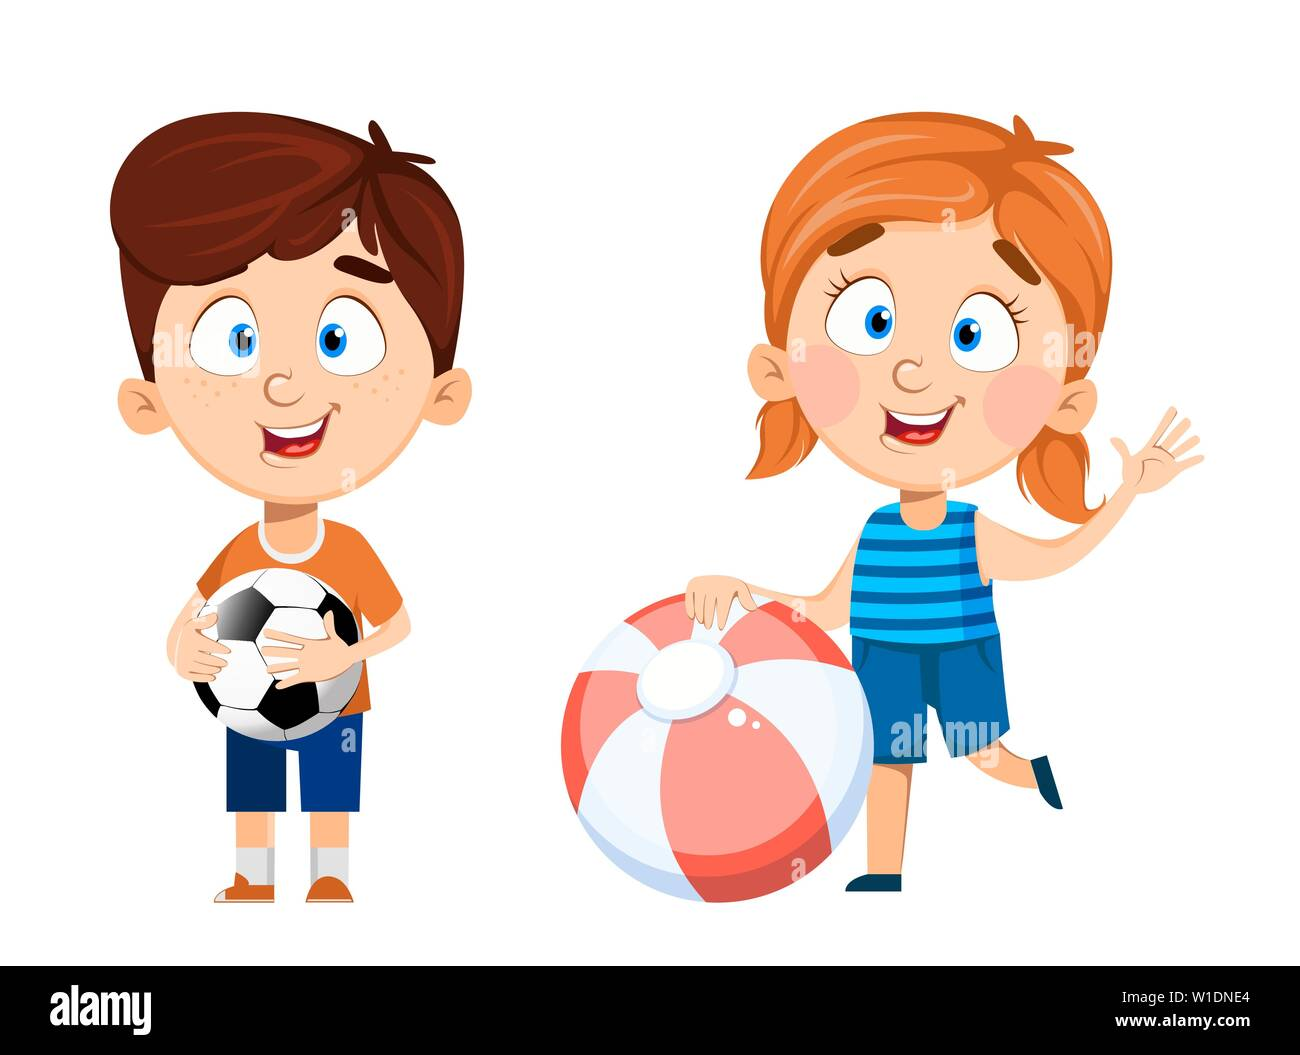 Two Kids Playing Football Royalty Free Cliparts, Vectors, And Stock  Illustration. Image 2738830.